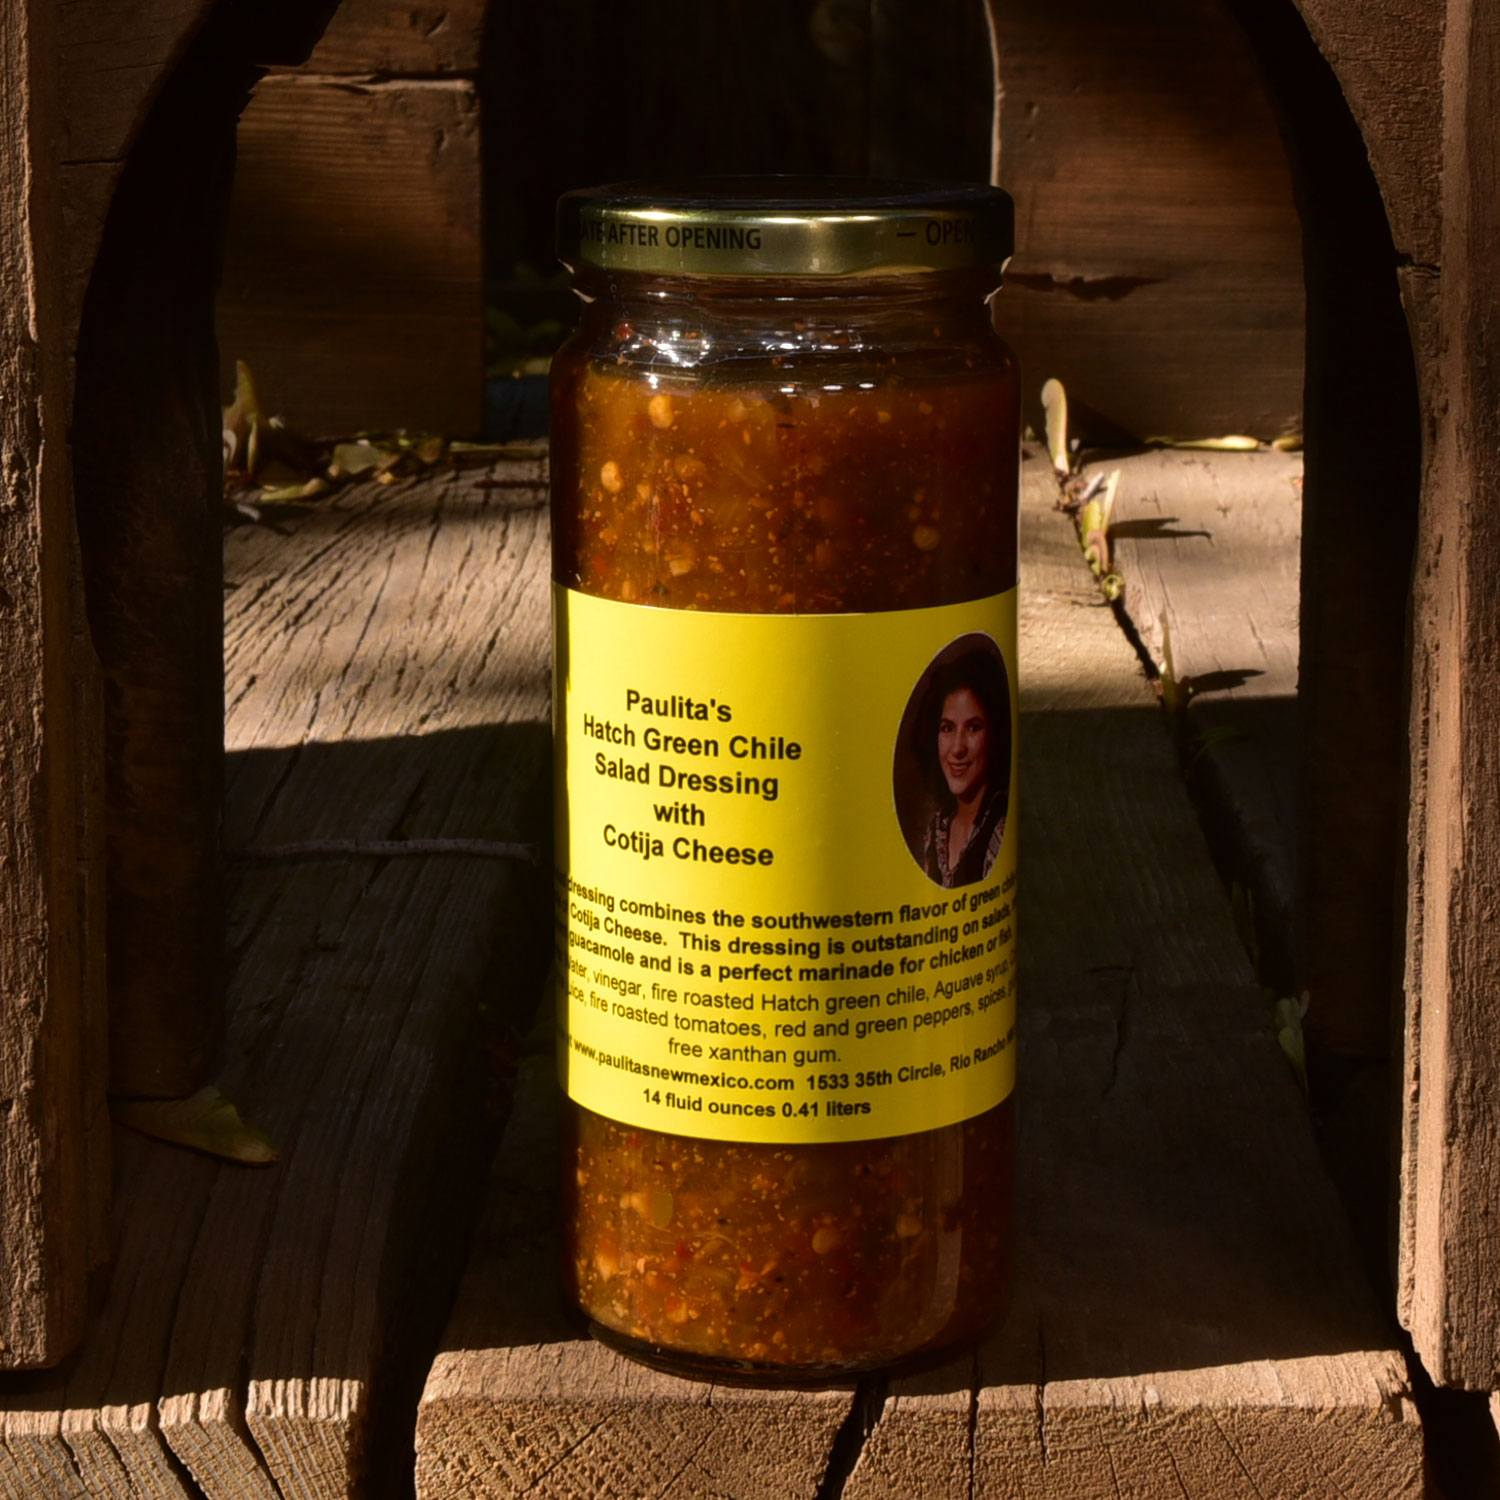 Paulita's Hatch Green Chile Salad Dressing with Cotija Cheese